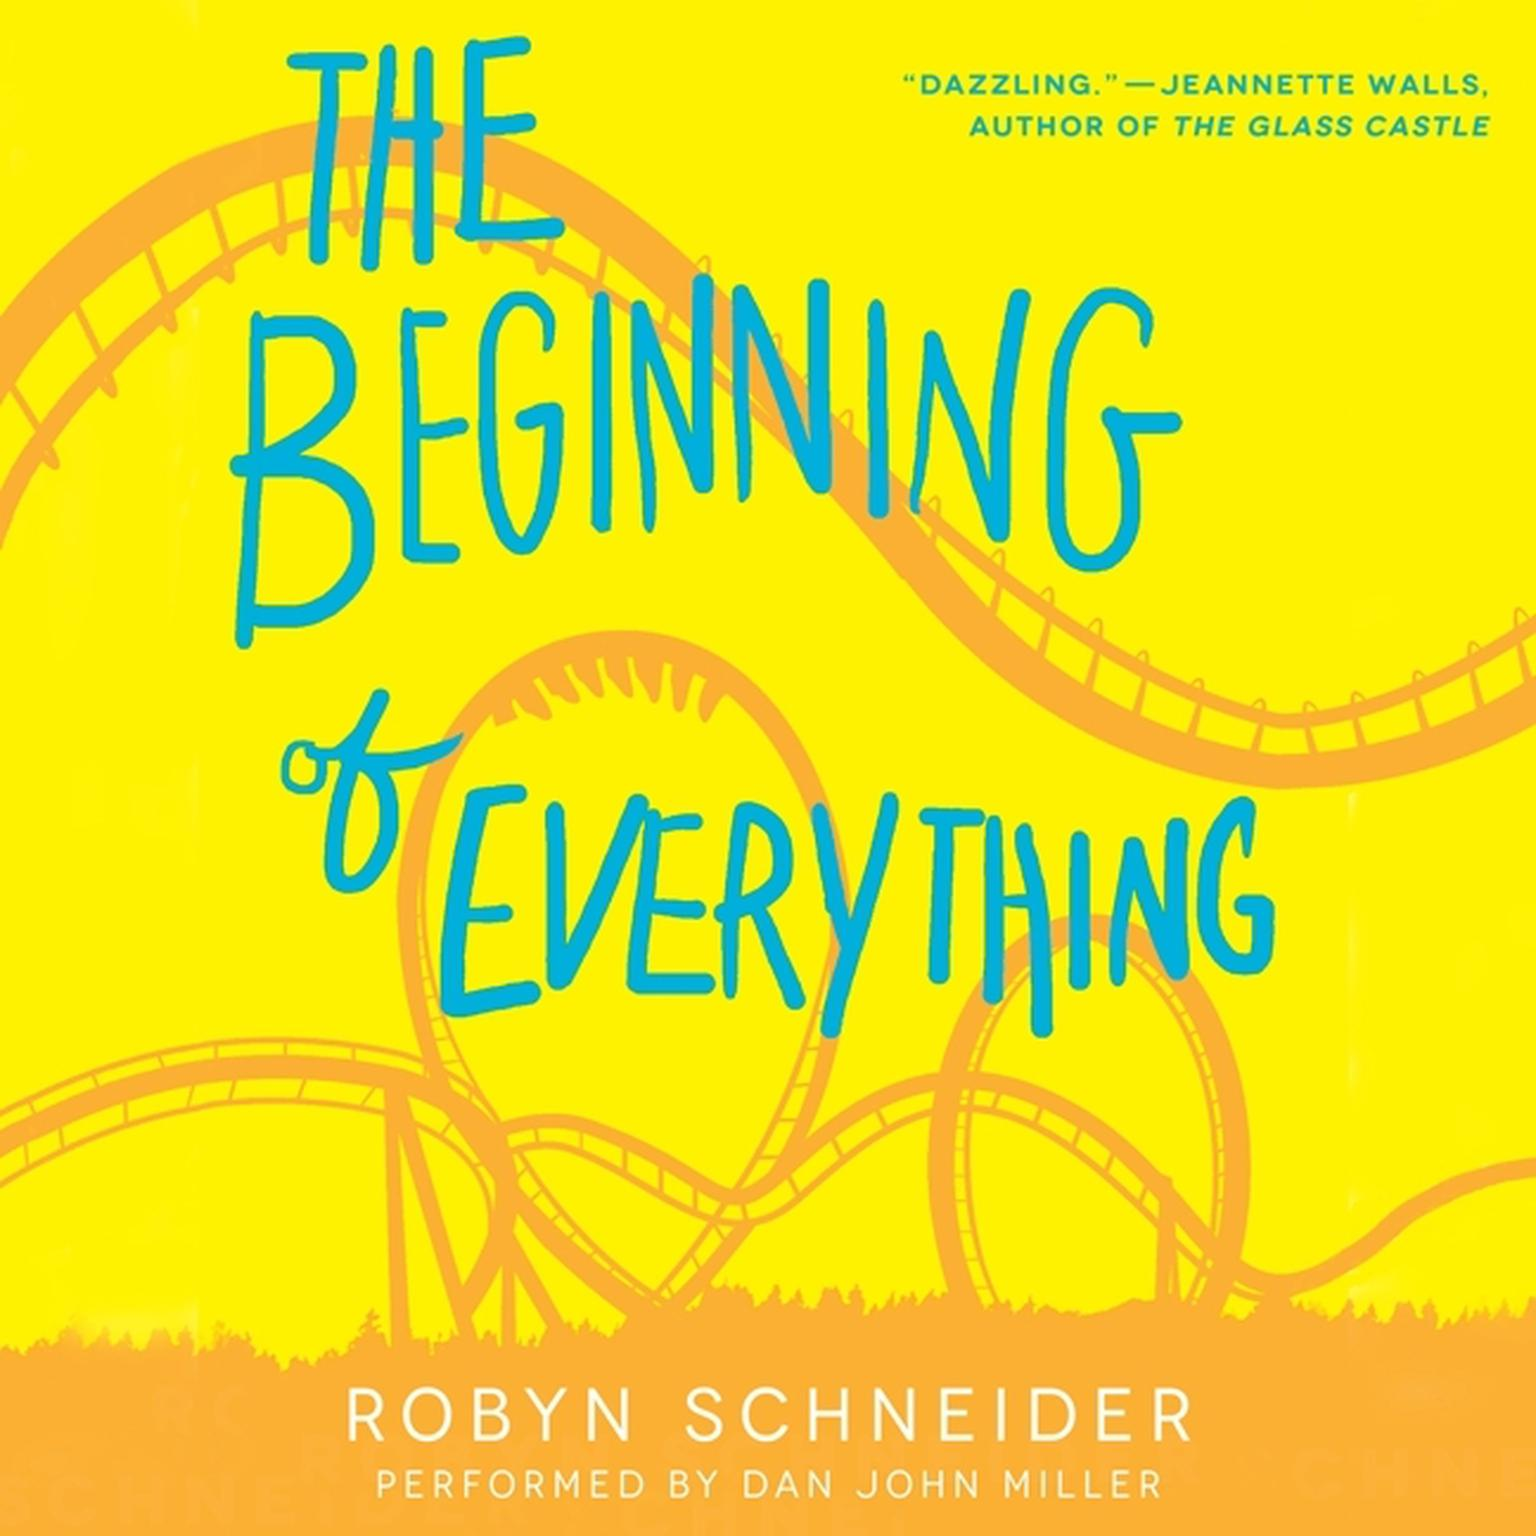 Printable The Beginning of Everything Audiobook Cover Art